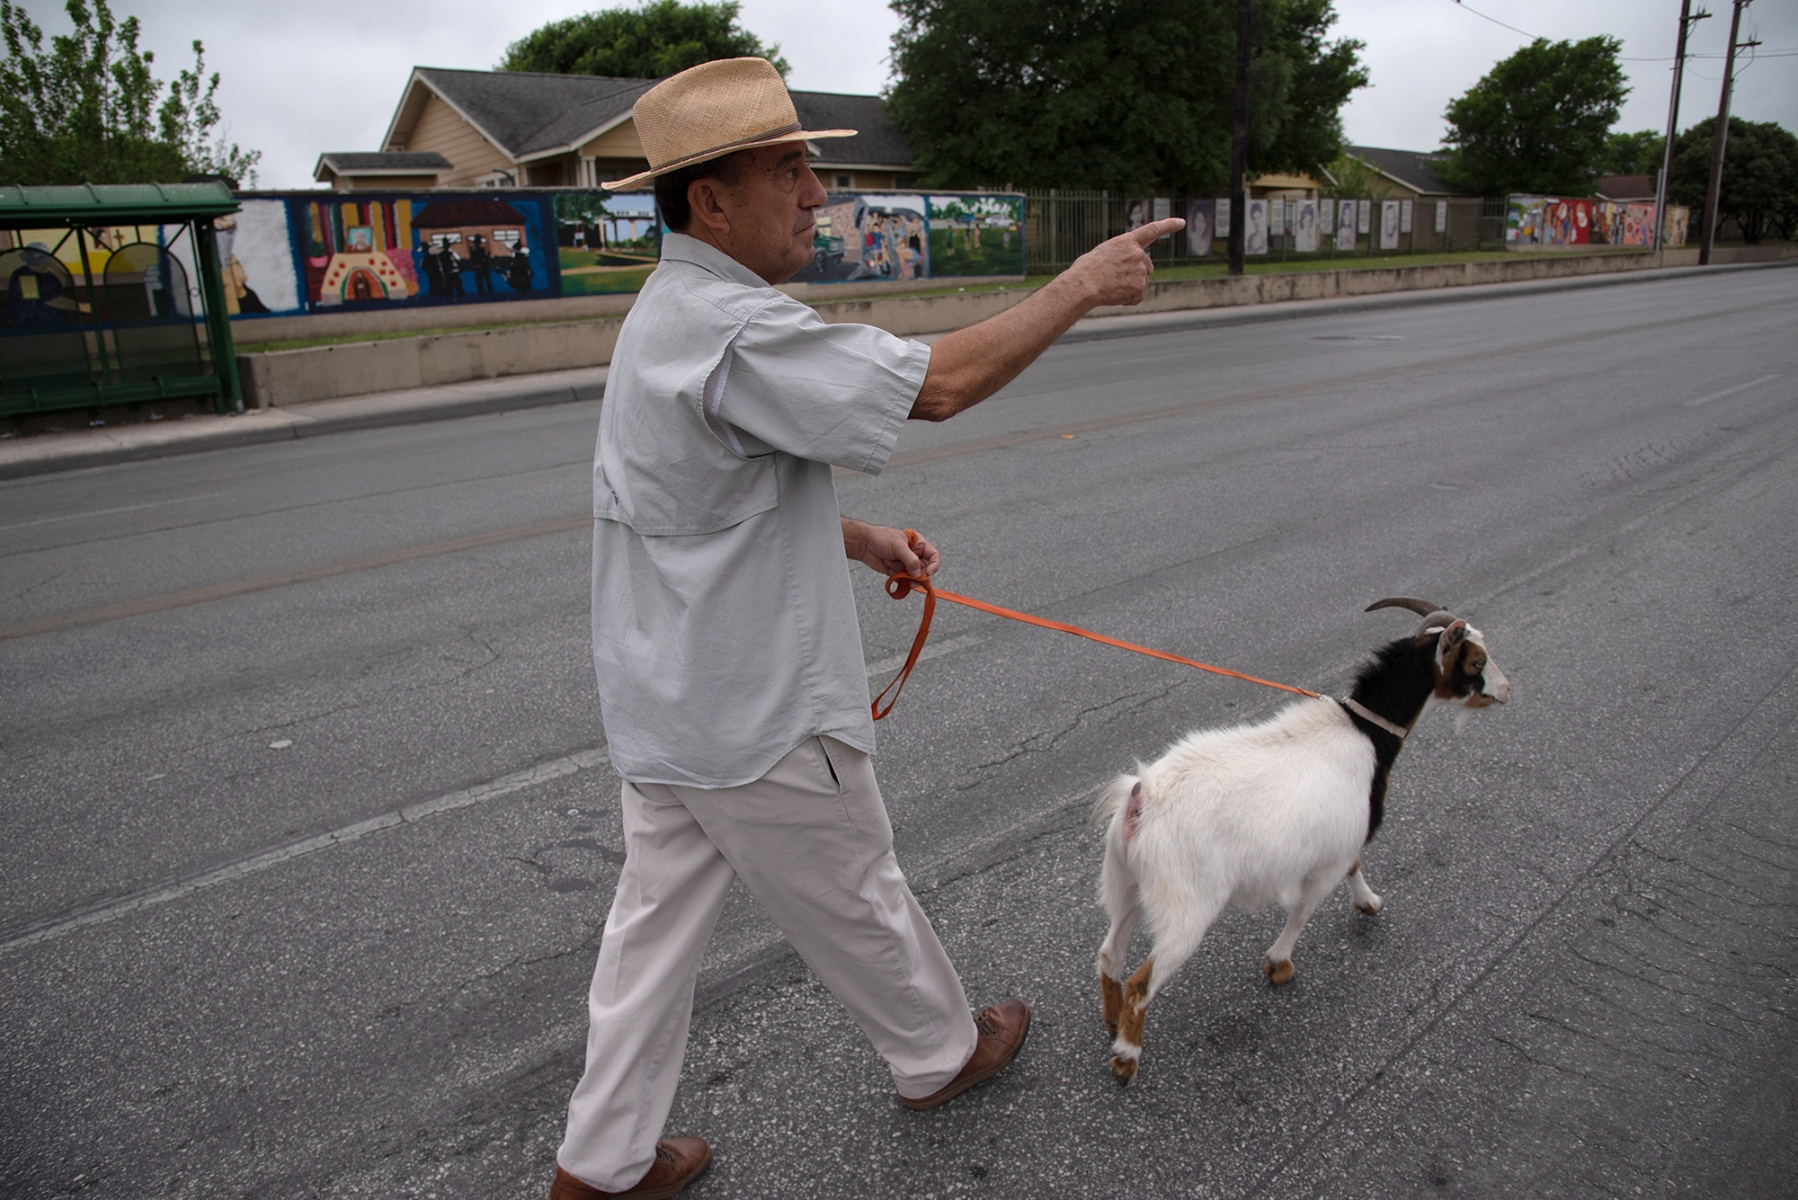 Walter Martinez, former District 5 councilman, walks while talking alongside his goat Charlie before San Antonio's 23rd annual César E. Chávez March for Justice on Guadalupe Street on Saturday, March 30. Photo by V. Finster | Heron